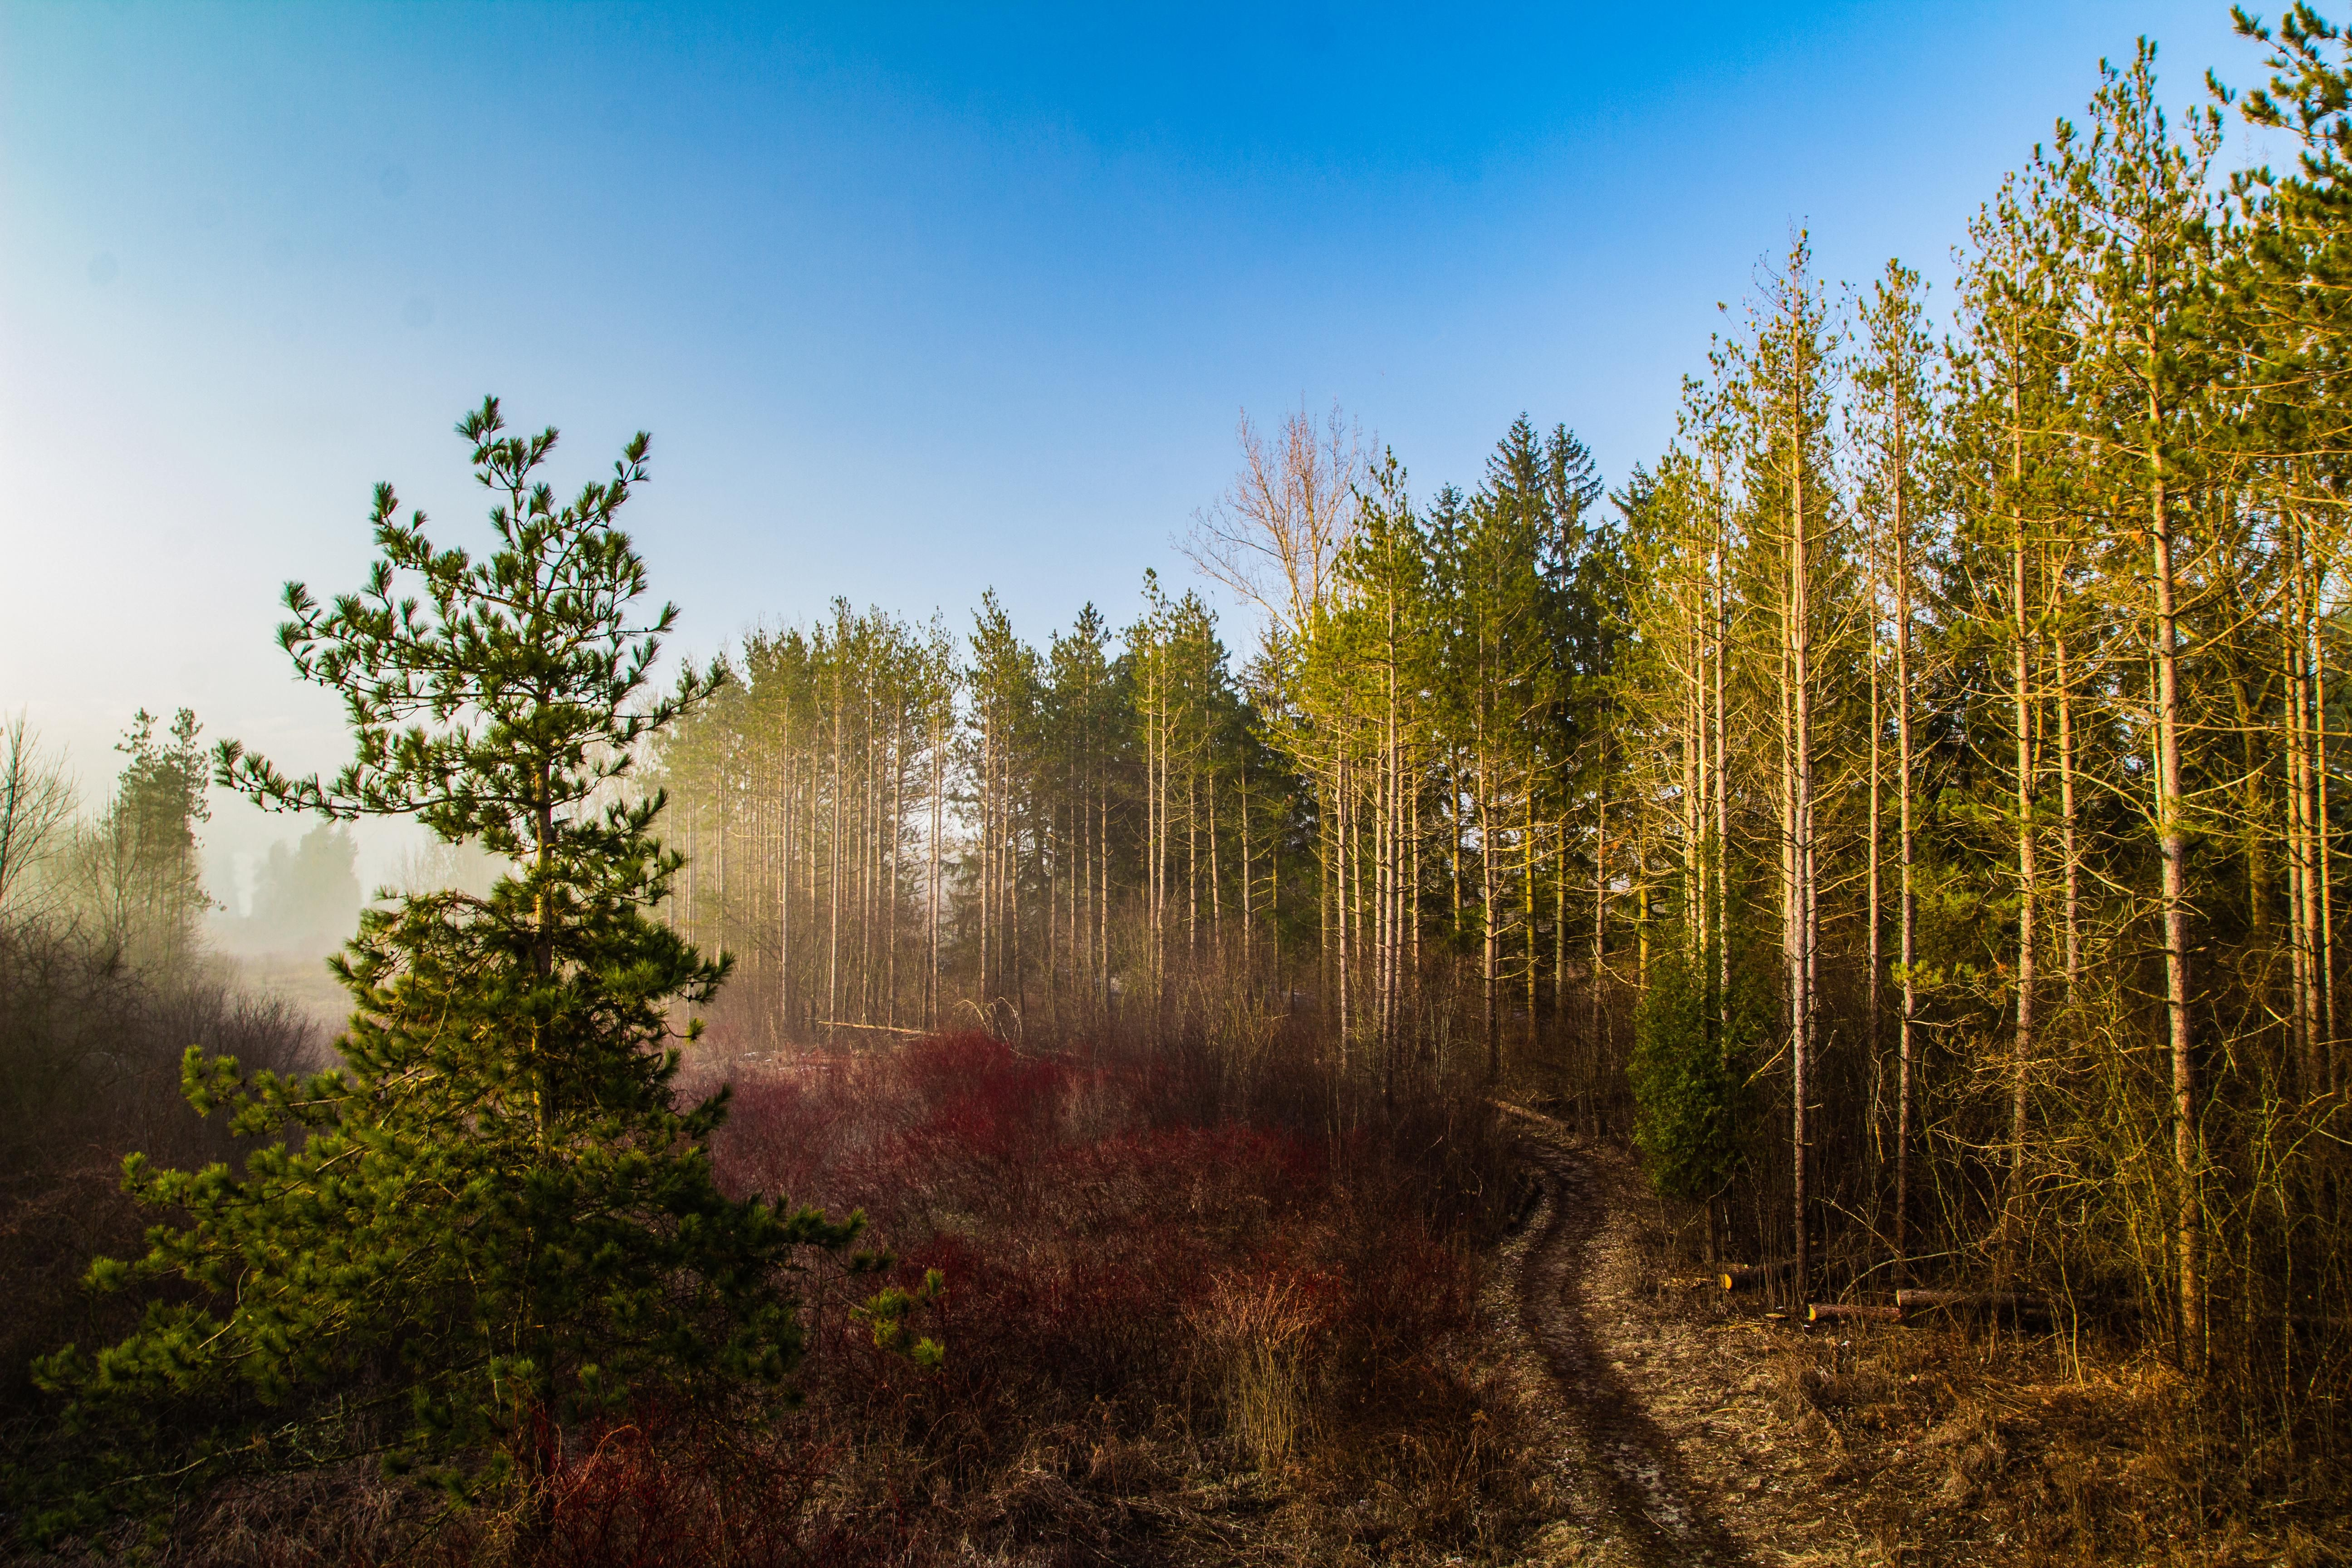 A Picture From An Early Morning Walk Waterloo Ontario Oc 51843456 Landscape Photography Landscape Nature Photography